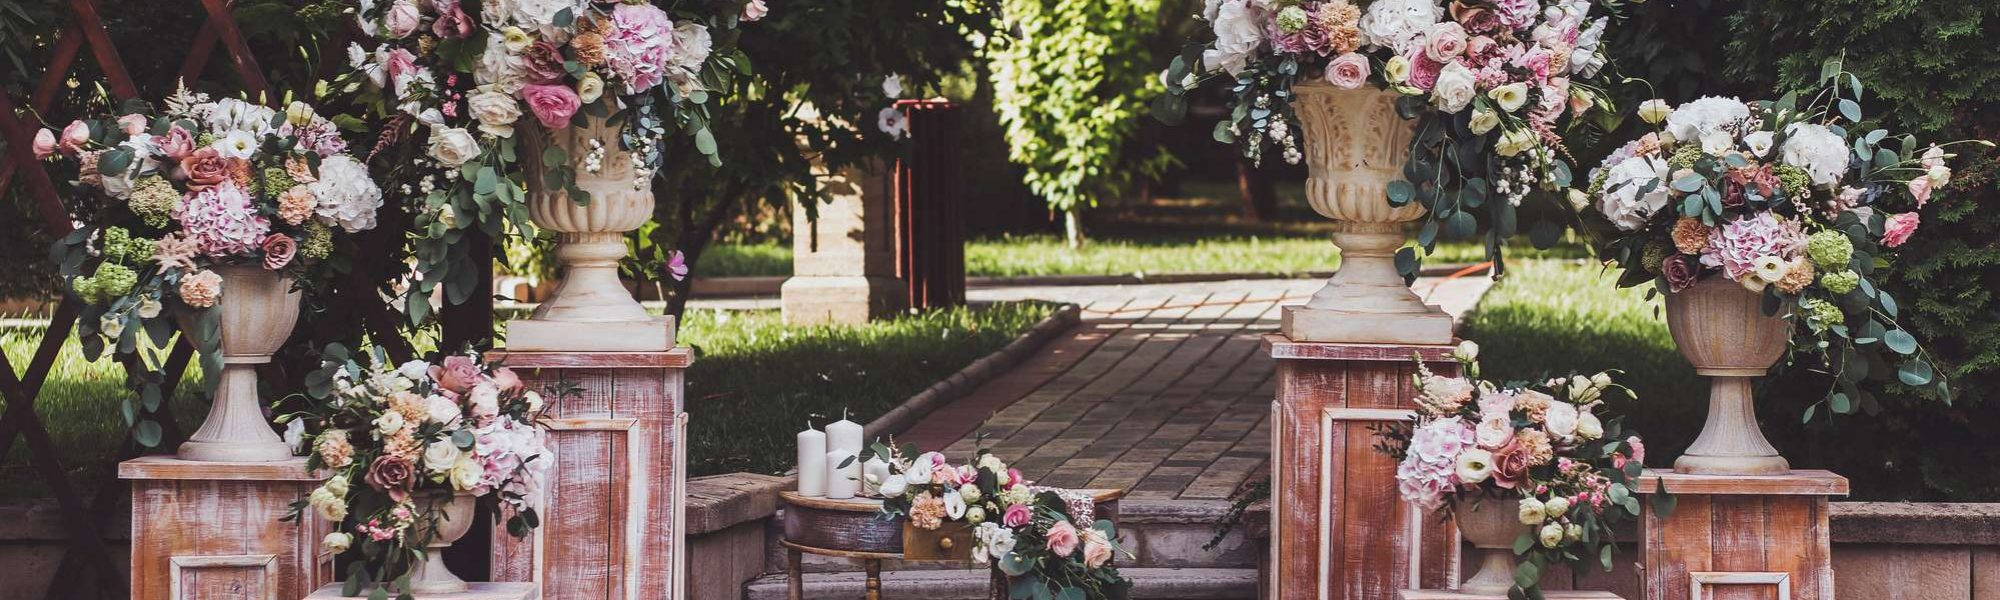 beautiful floral outdoor wedding display with pinks and greenery